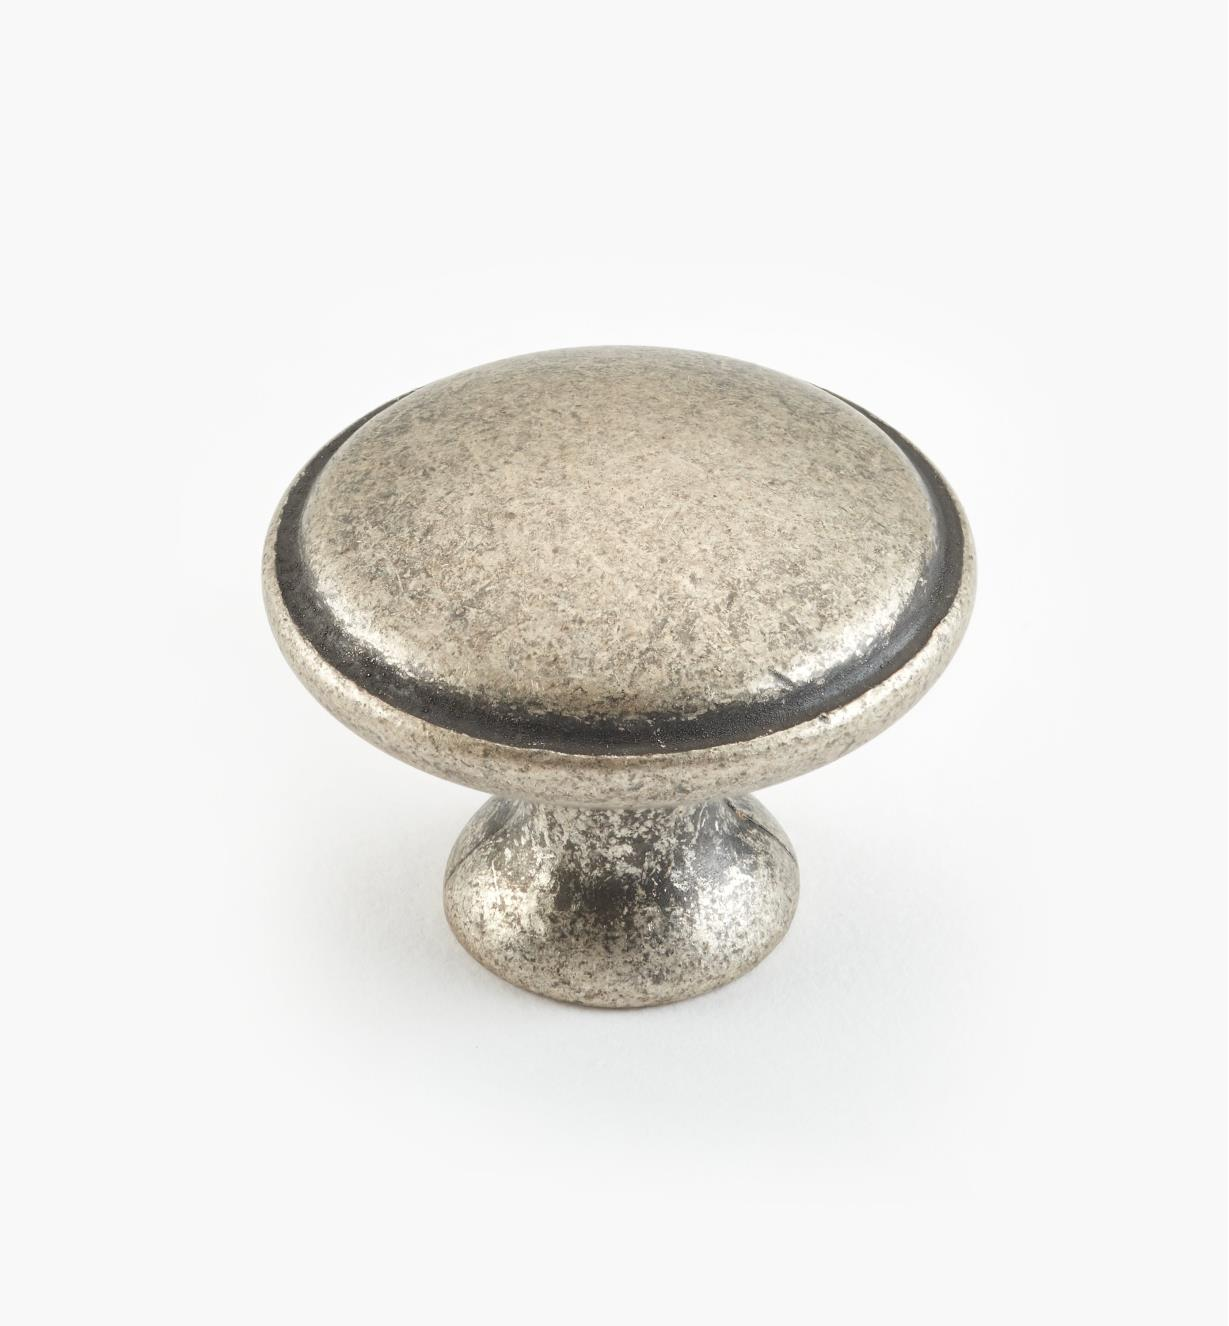 00A7210 - 30mm x 23mm Old Silver Knob